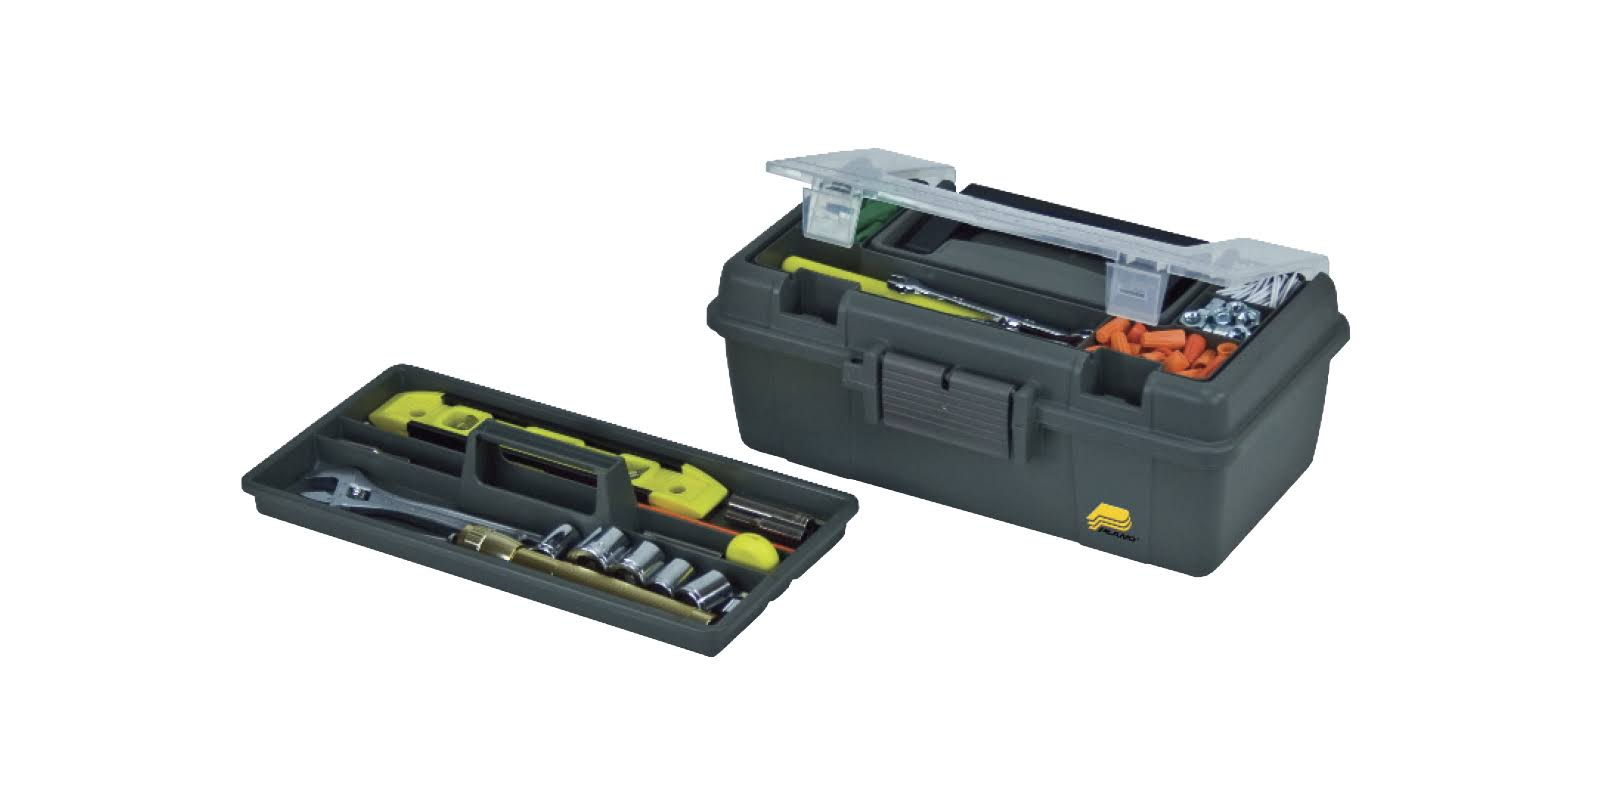 Plano 13 in. Compact Tool Box with Tray, Graphite Gray